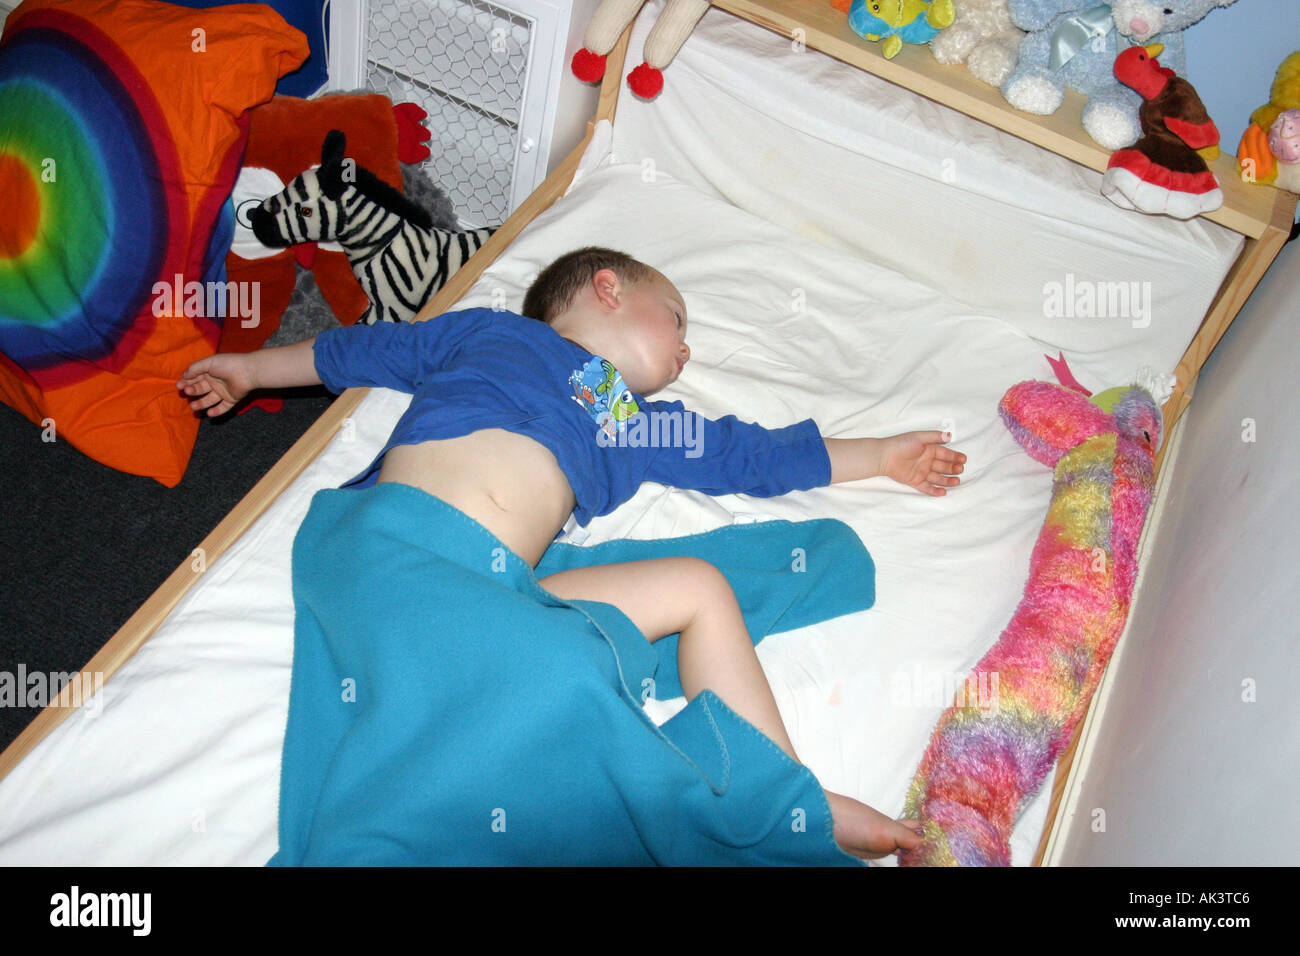 Young child sleeping in bed with blankets falling off Stock Photo